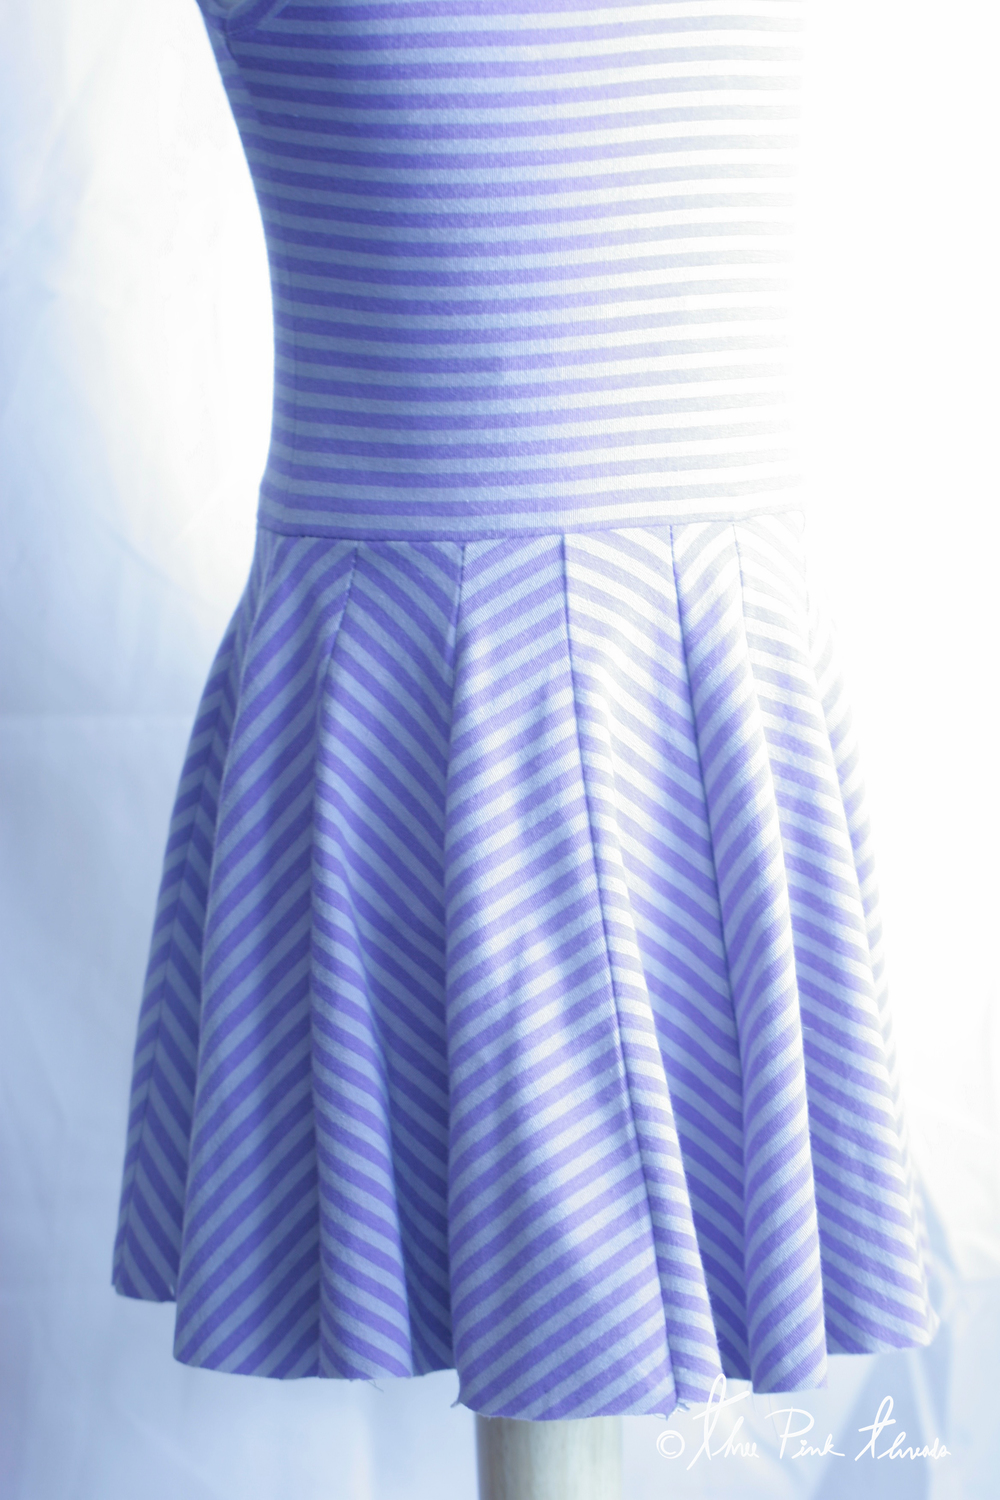 Above is an un-hemmed natural circle skirt, which falls quite nicely on it's own but having split the circle skirt up into sections to create the chevron design my circle skirt was not quite as perfect as I wanted it to be for this dress I'd been imagining for a very long time.